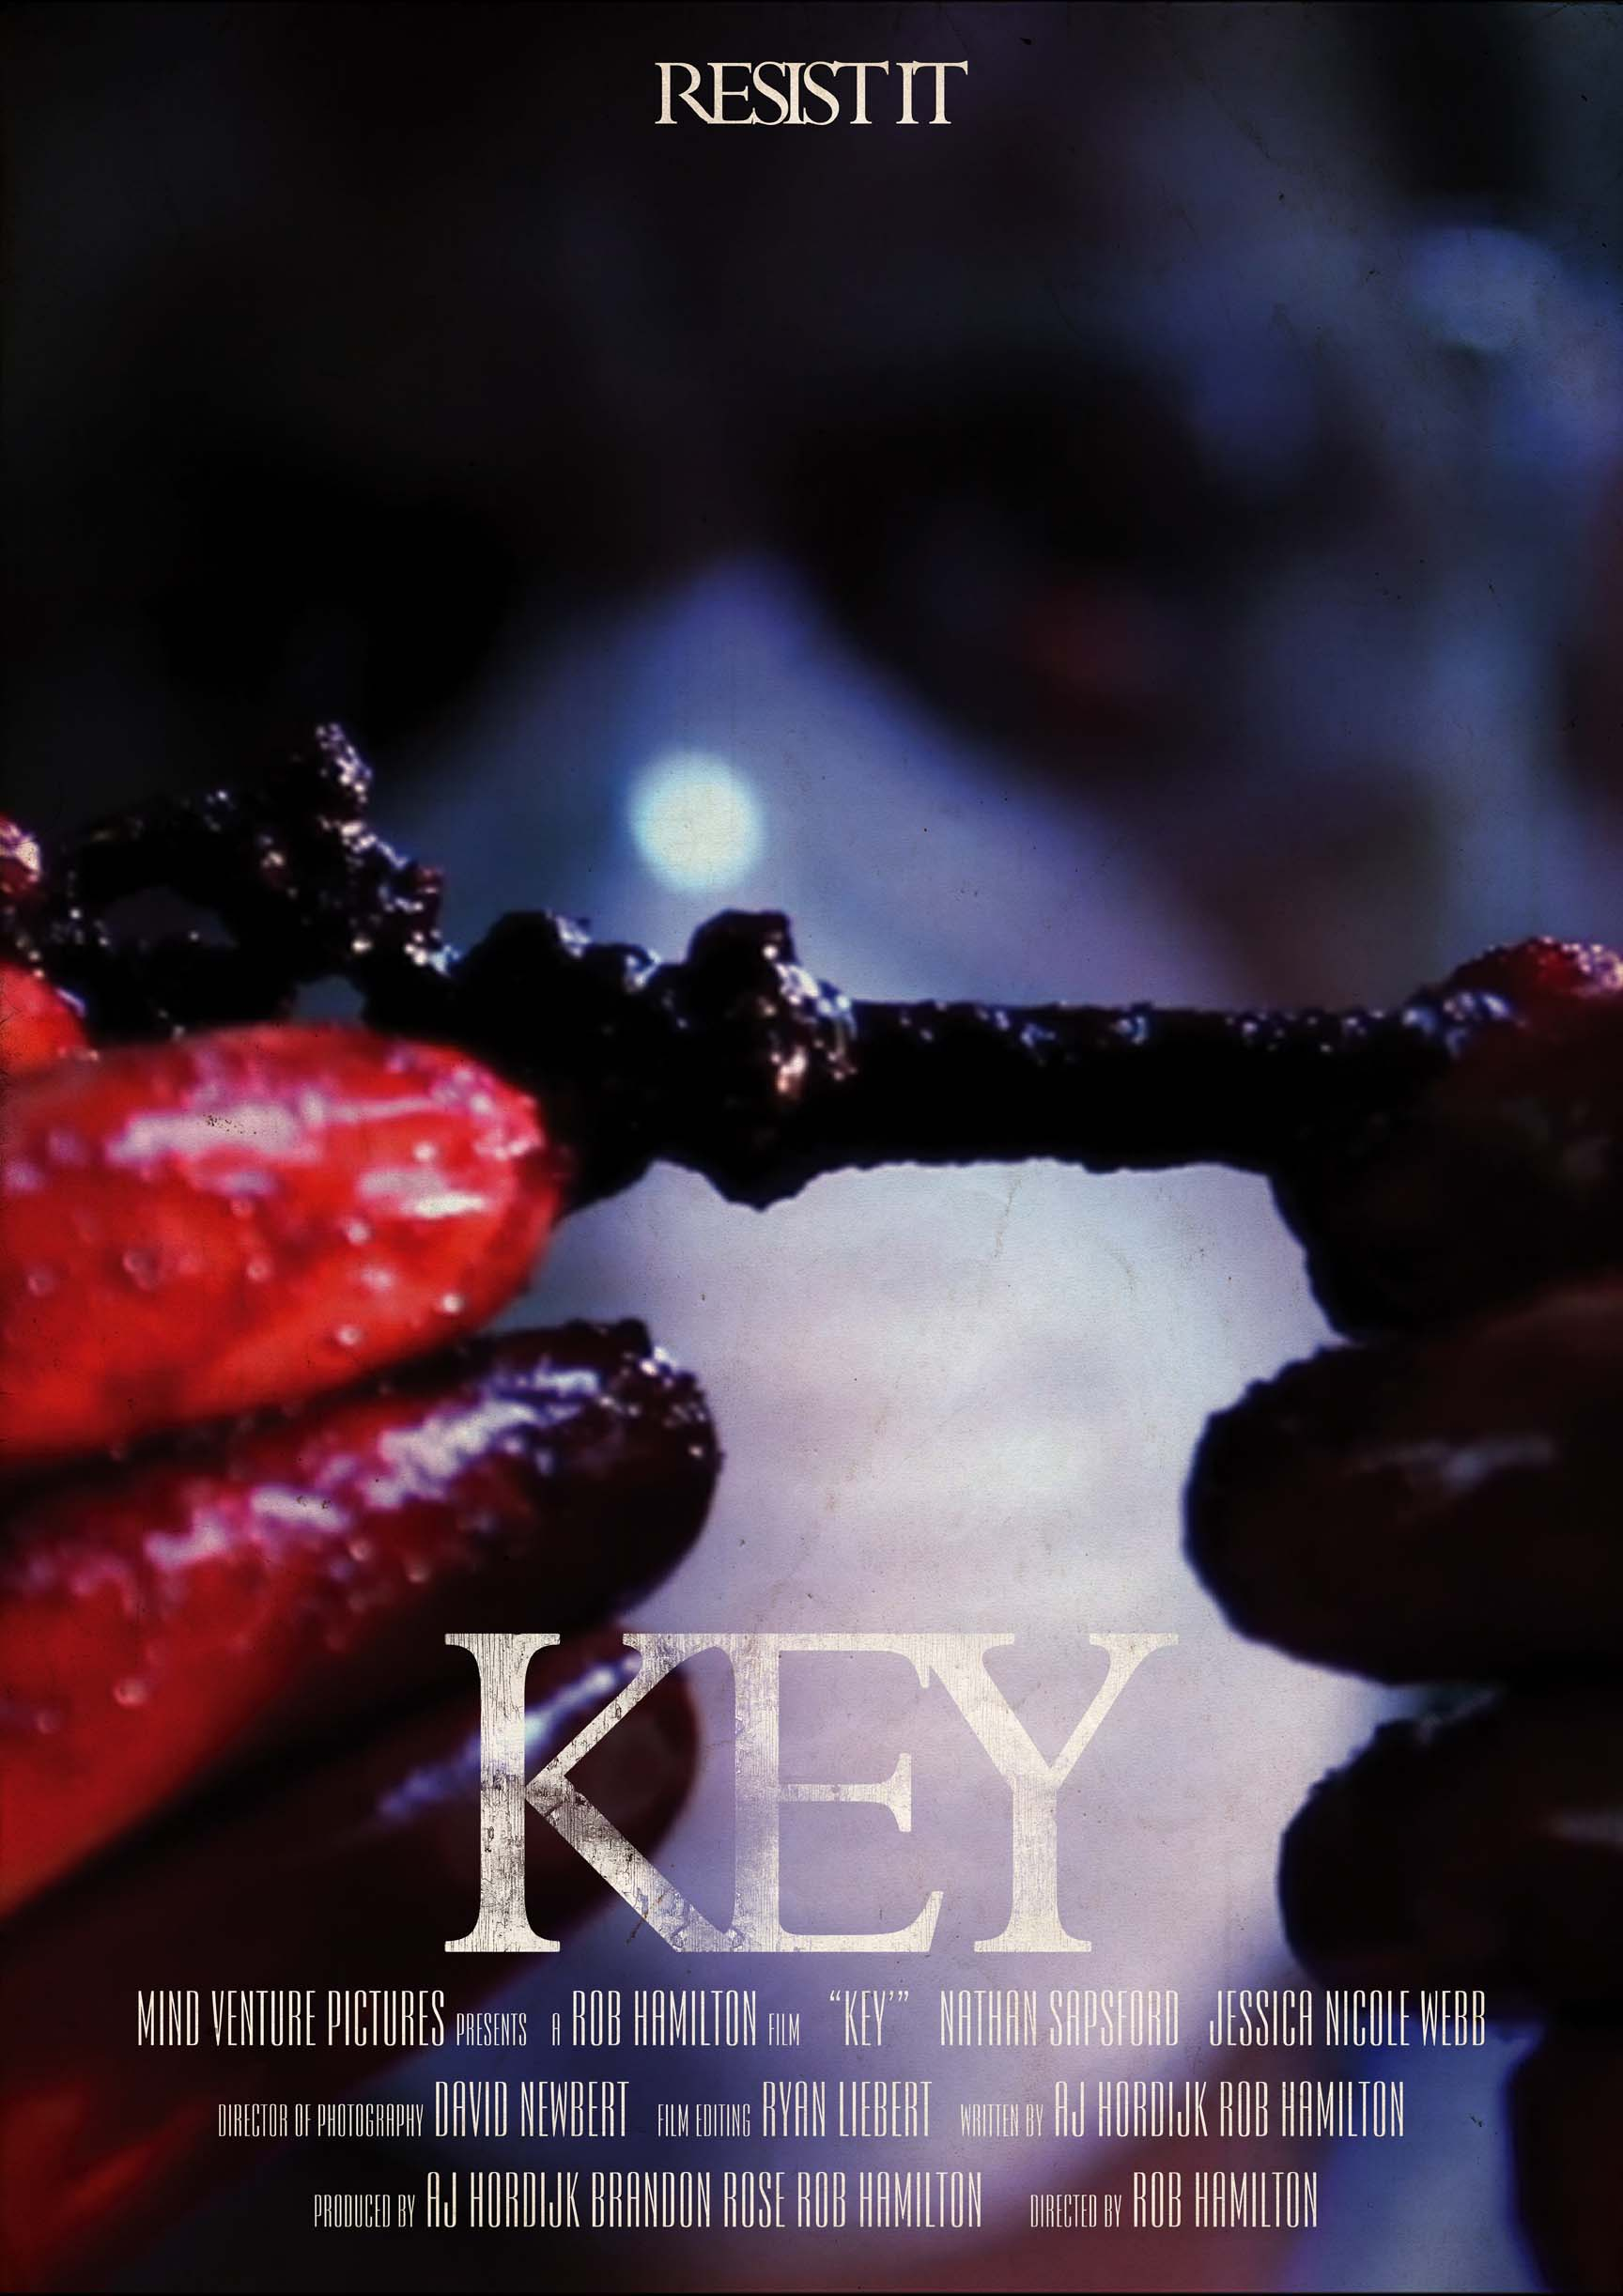 Poster design key - Key Poster Design For The Upcoming Feature Film Key From Mind Venture Pictures